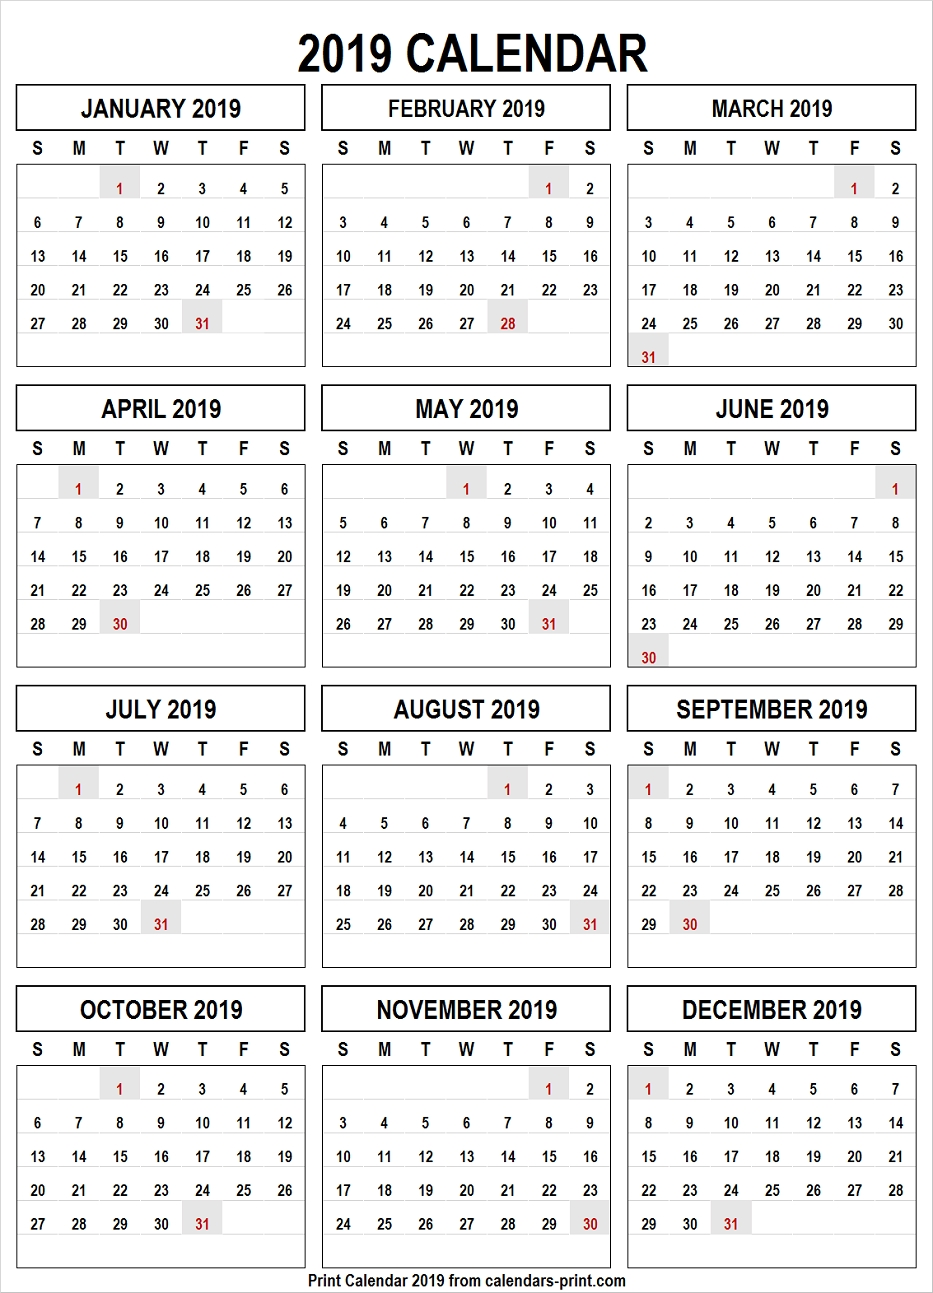 Calendar 2019 Png Free Download Template With Notes   Holidays Calendar 2019 Png